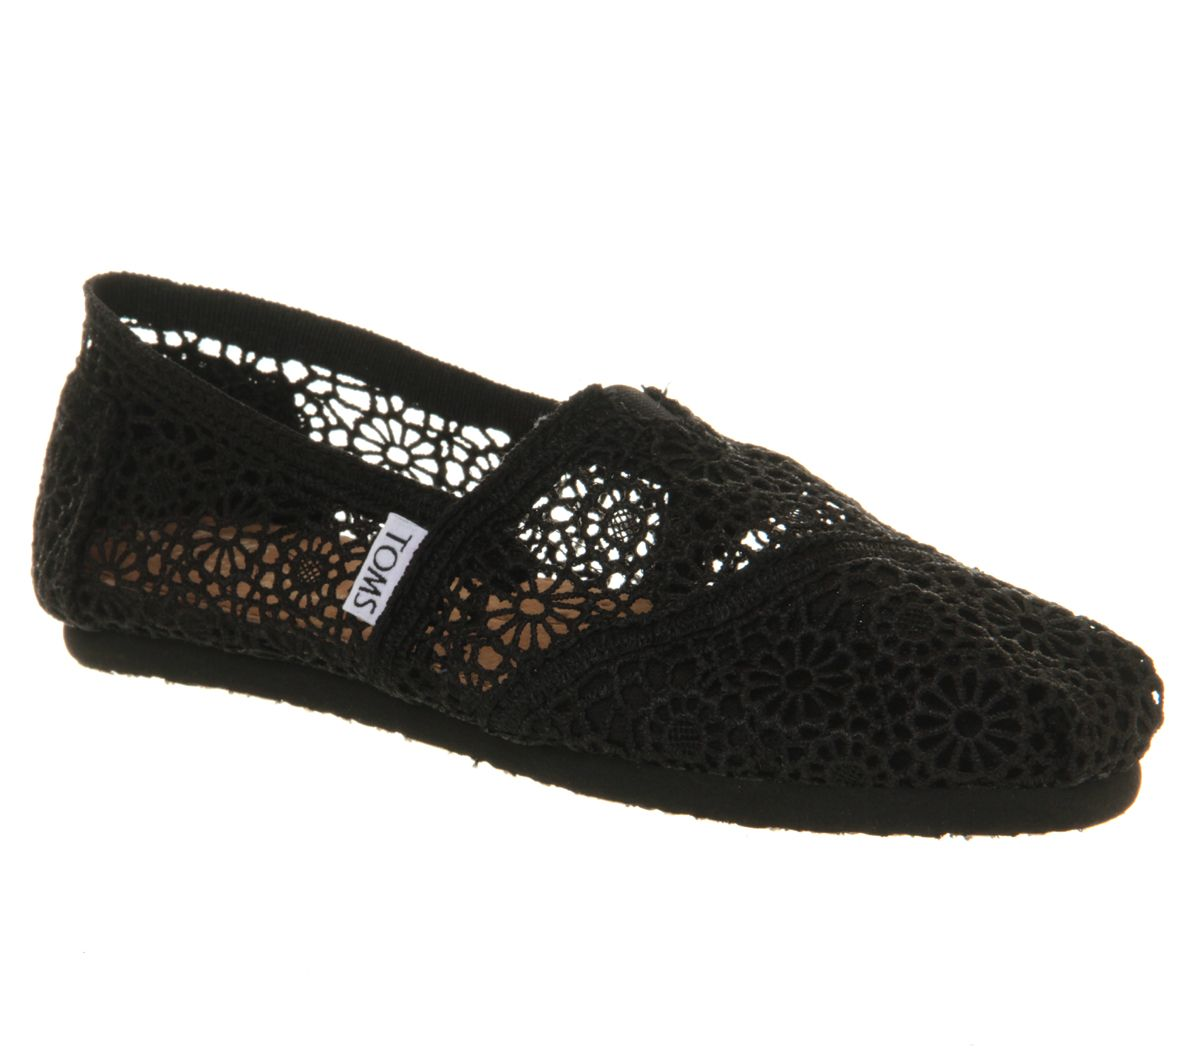 Toms Seasonal  classic slip on espadrilles Black